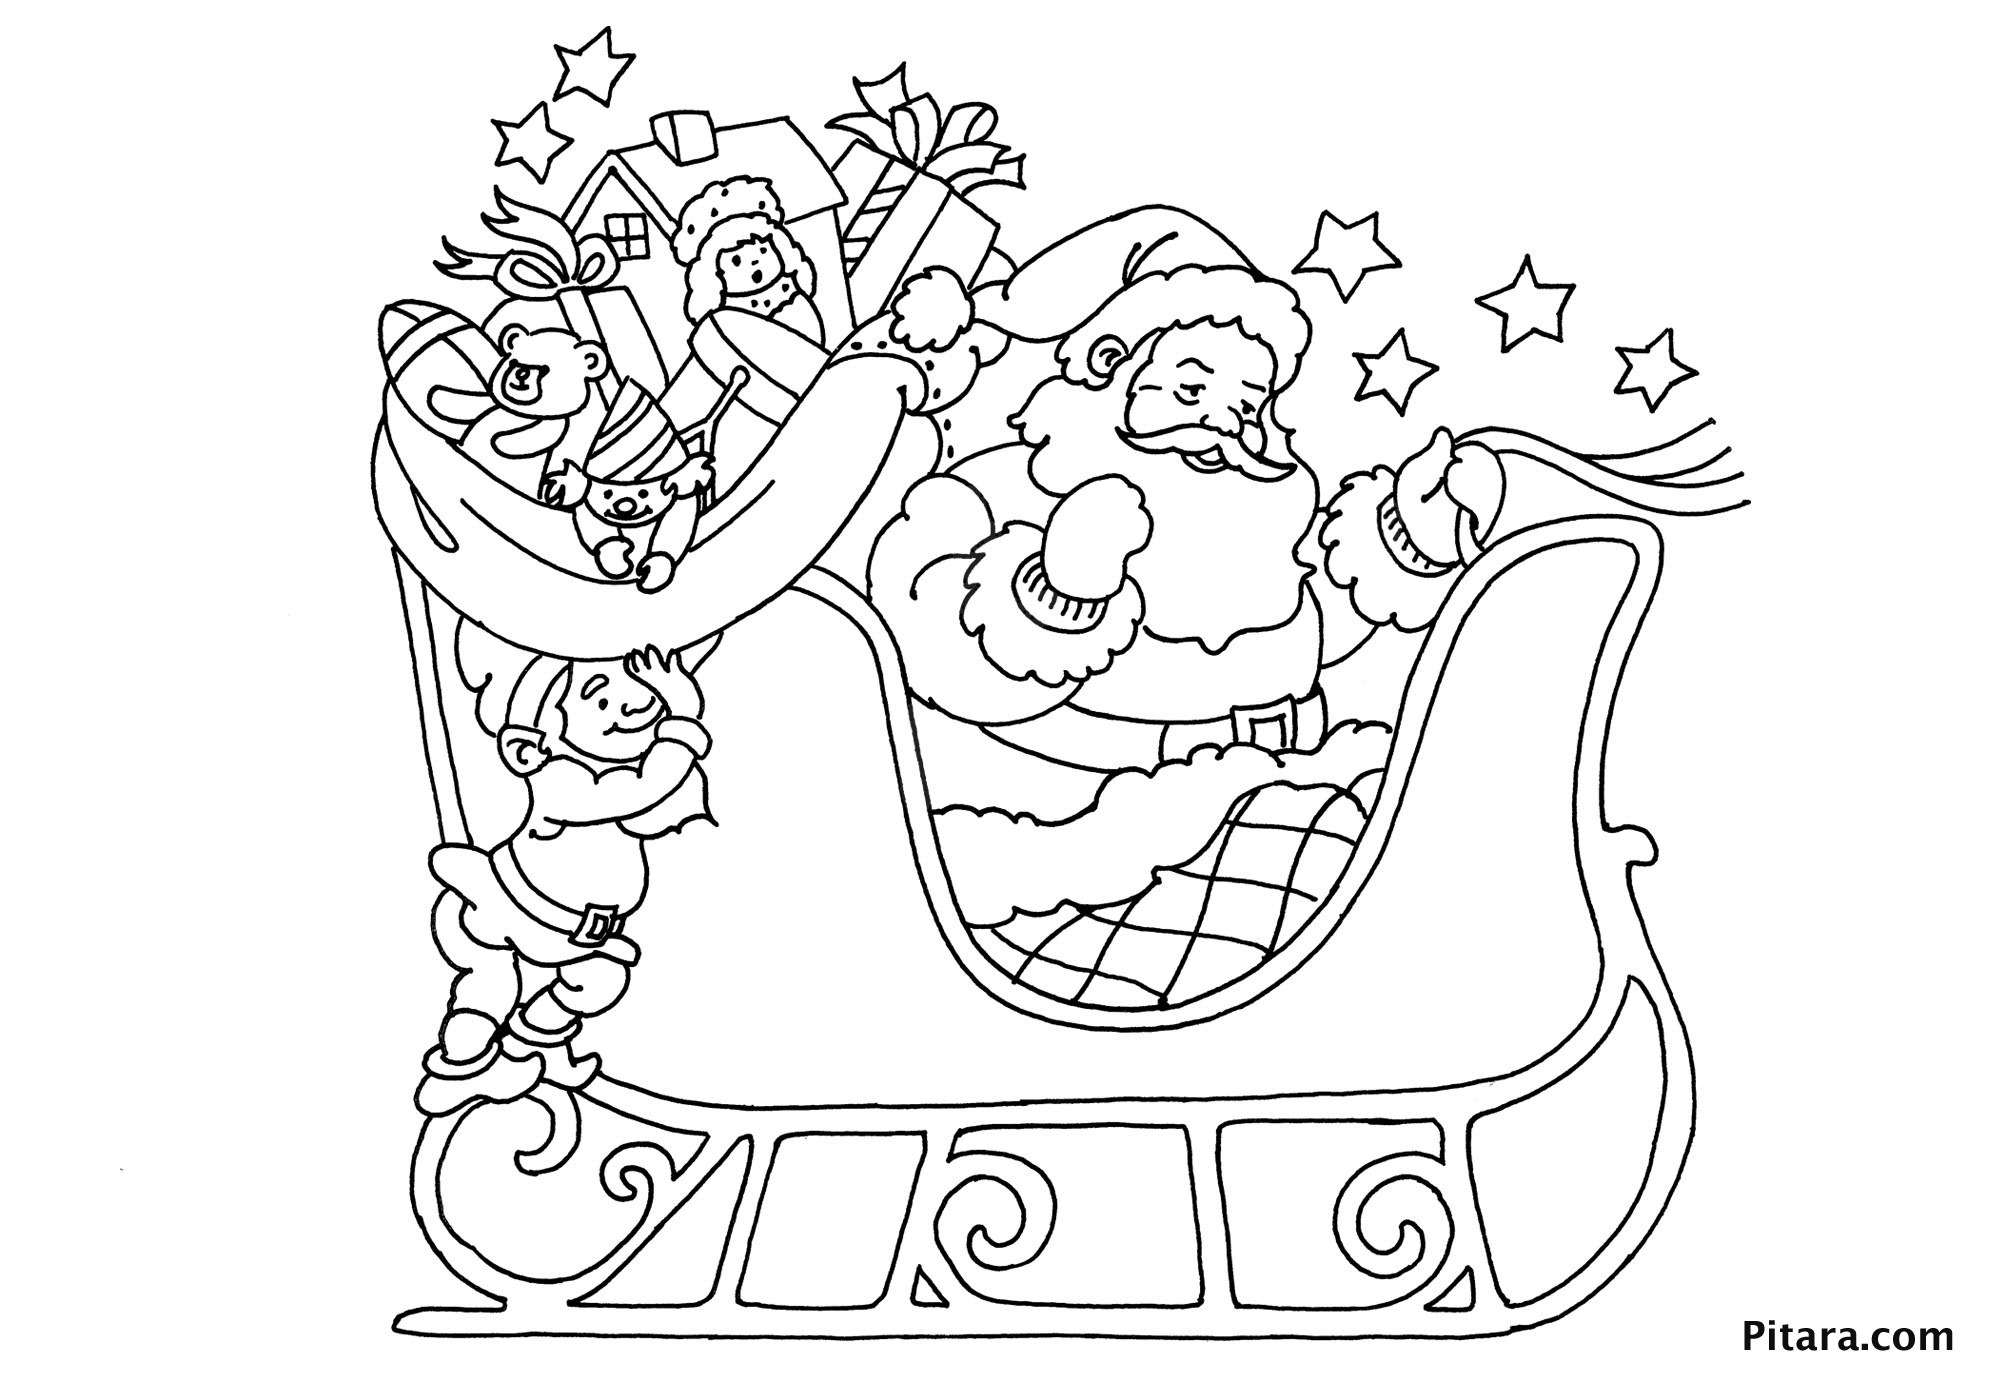 39 'Merry Christmas Coloring Pages' Printable for Adults & Kids ... | 1400x2000